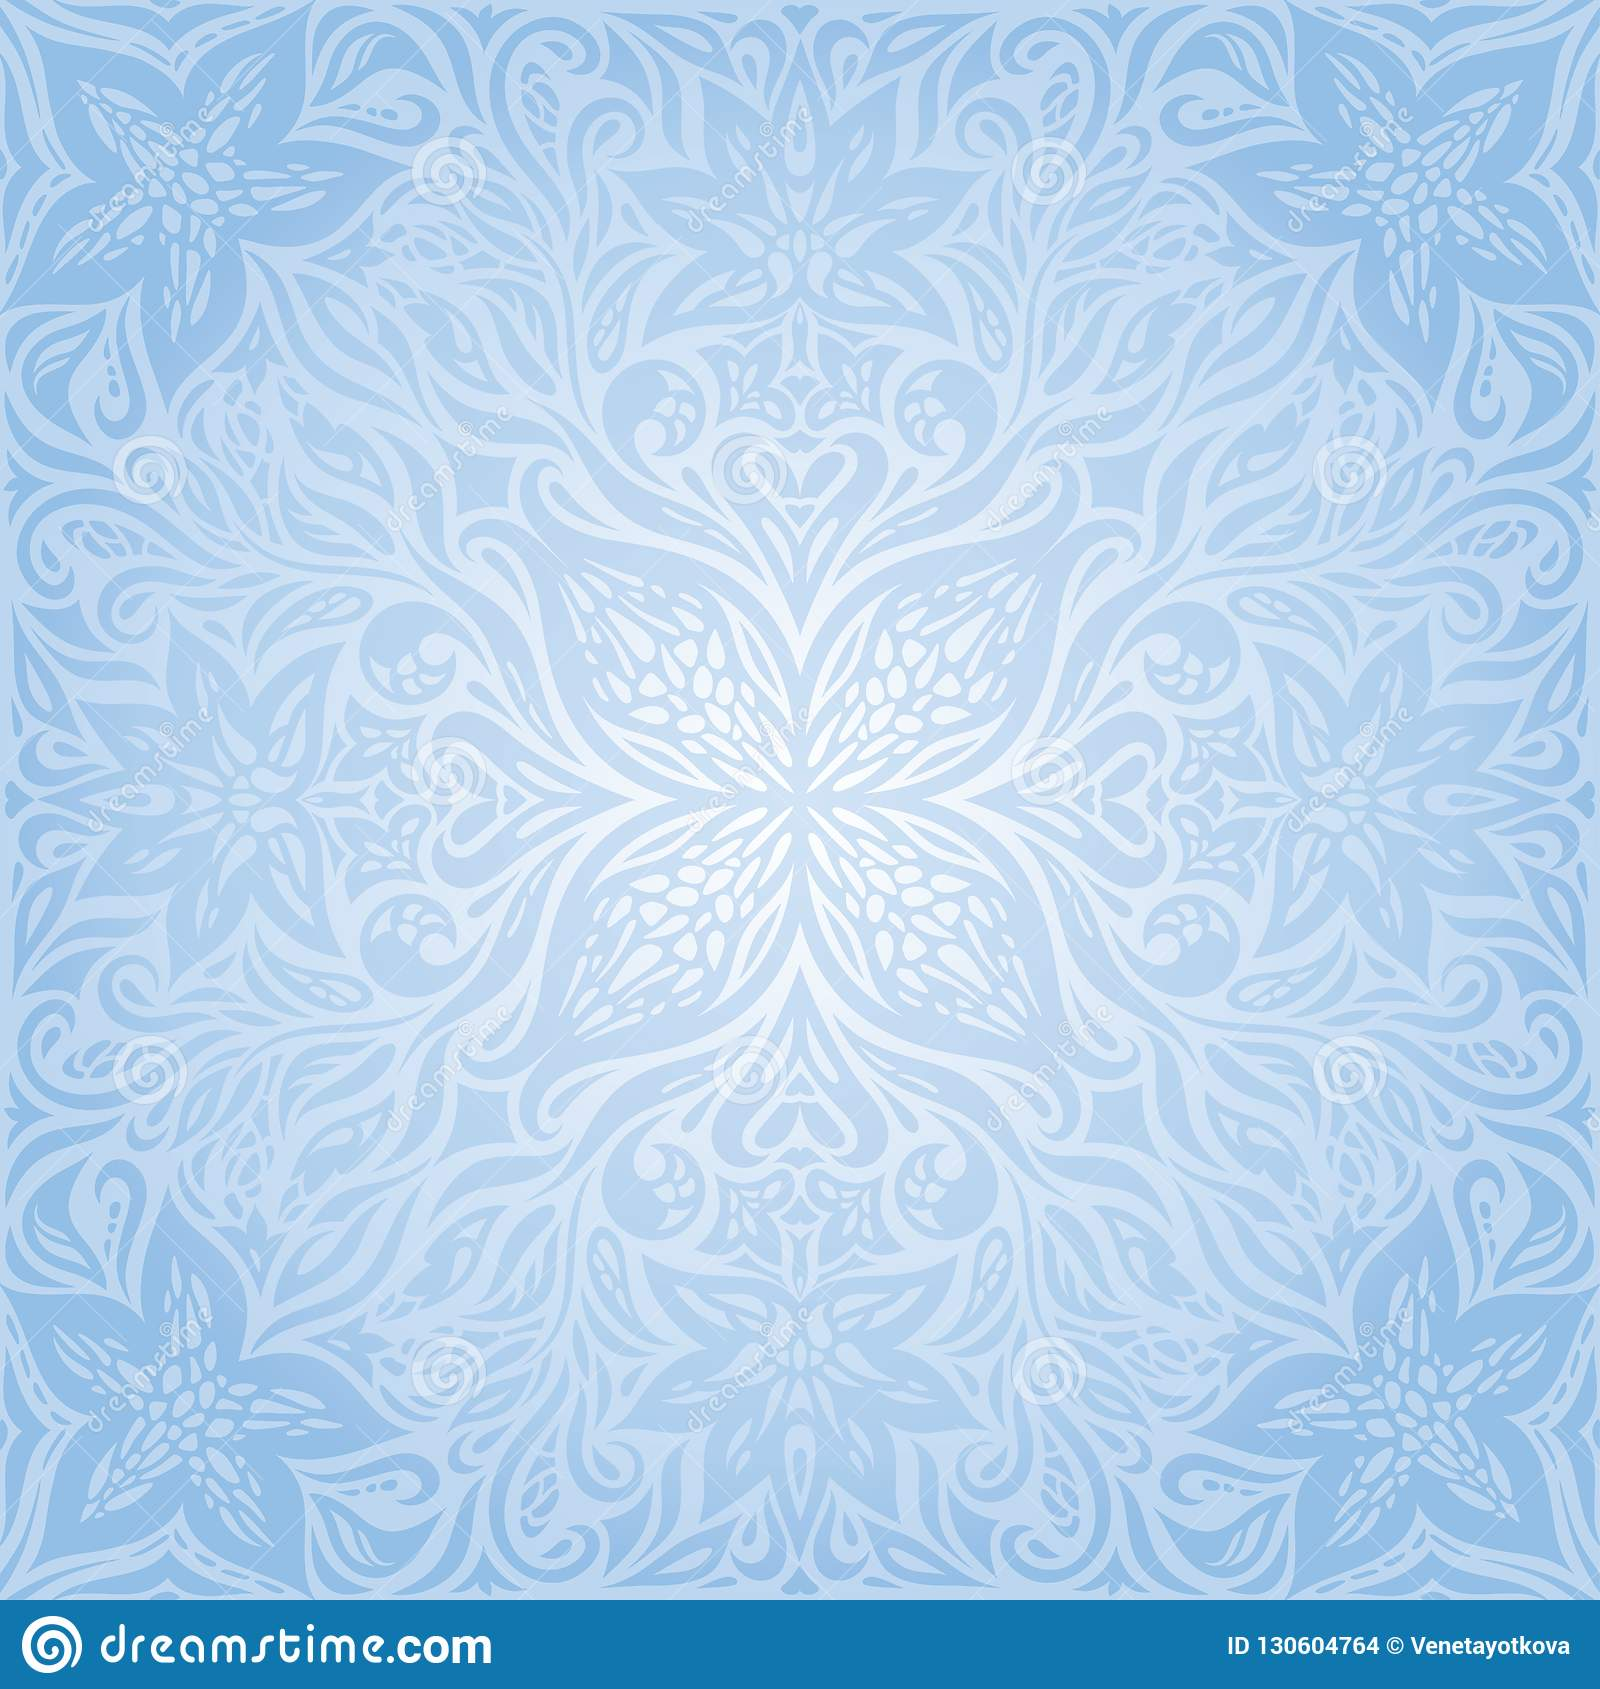 Blue Vector Decorative Flowers Background Floral Ornamental